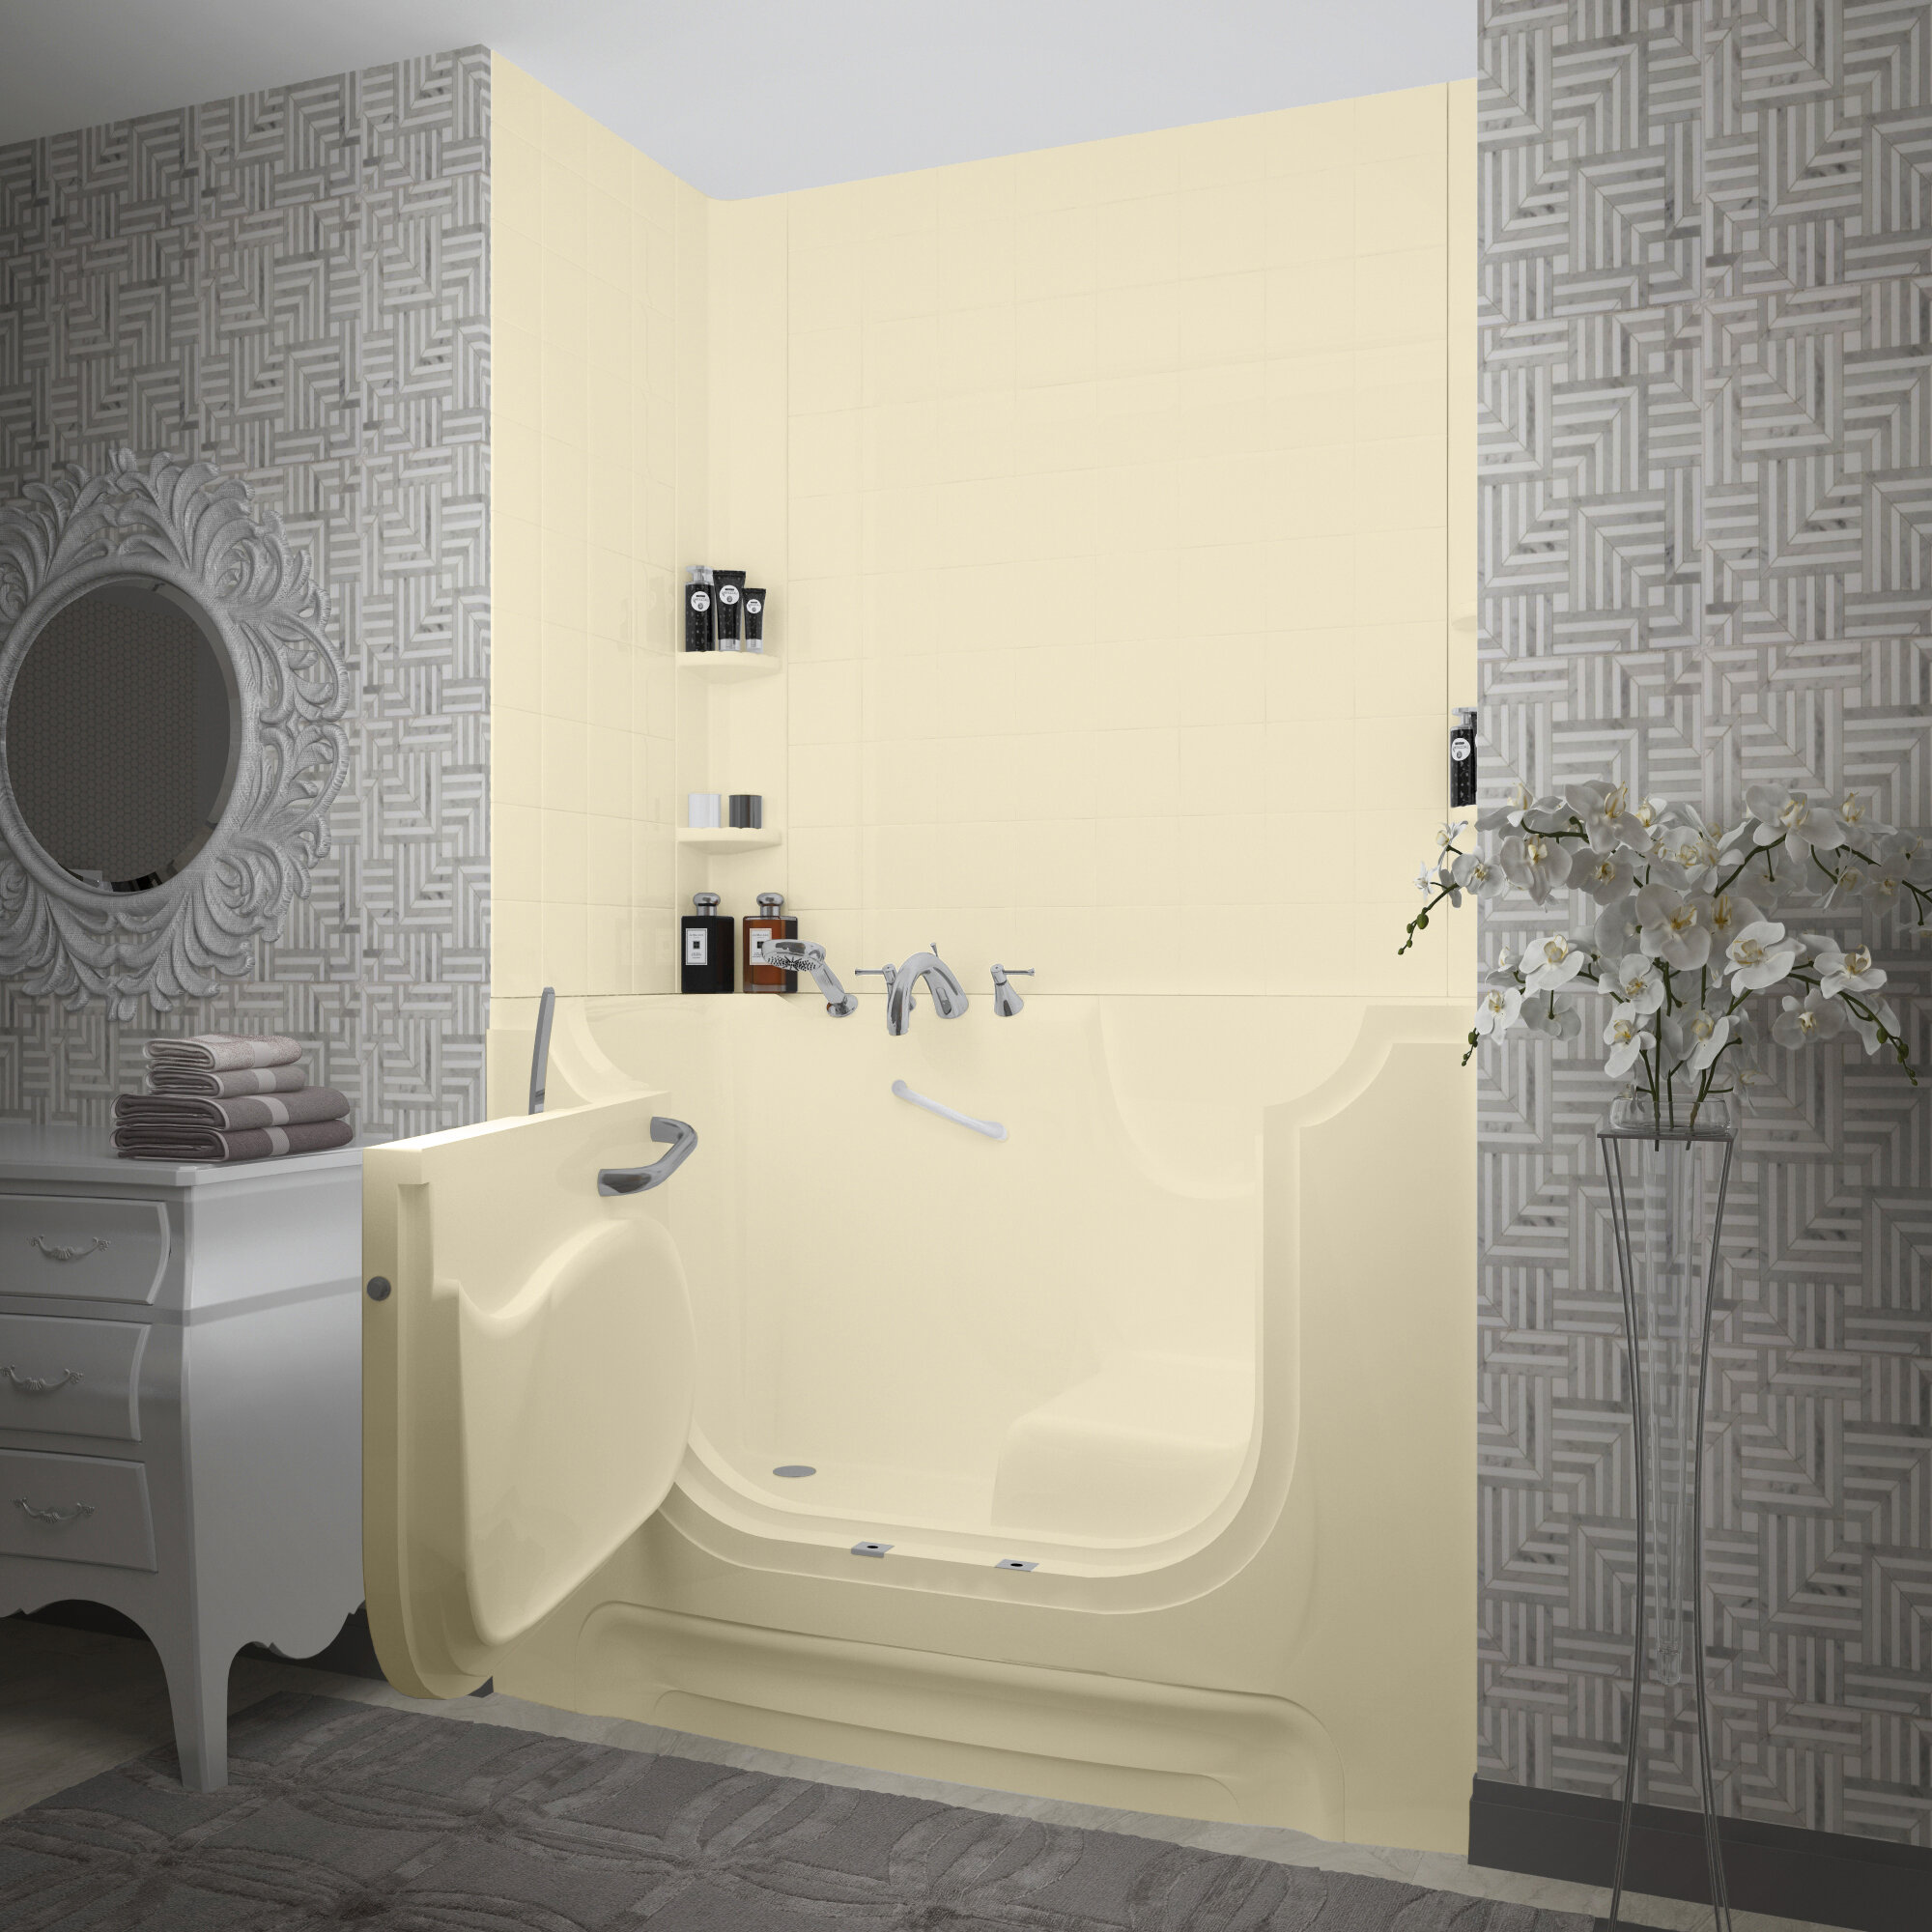 Therapeutic Tubs Handitub 60 X 30 Walk In Soaking Fiberglass Bathtub With Faucet Heater And Integrated Seat Wayfair